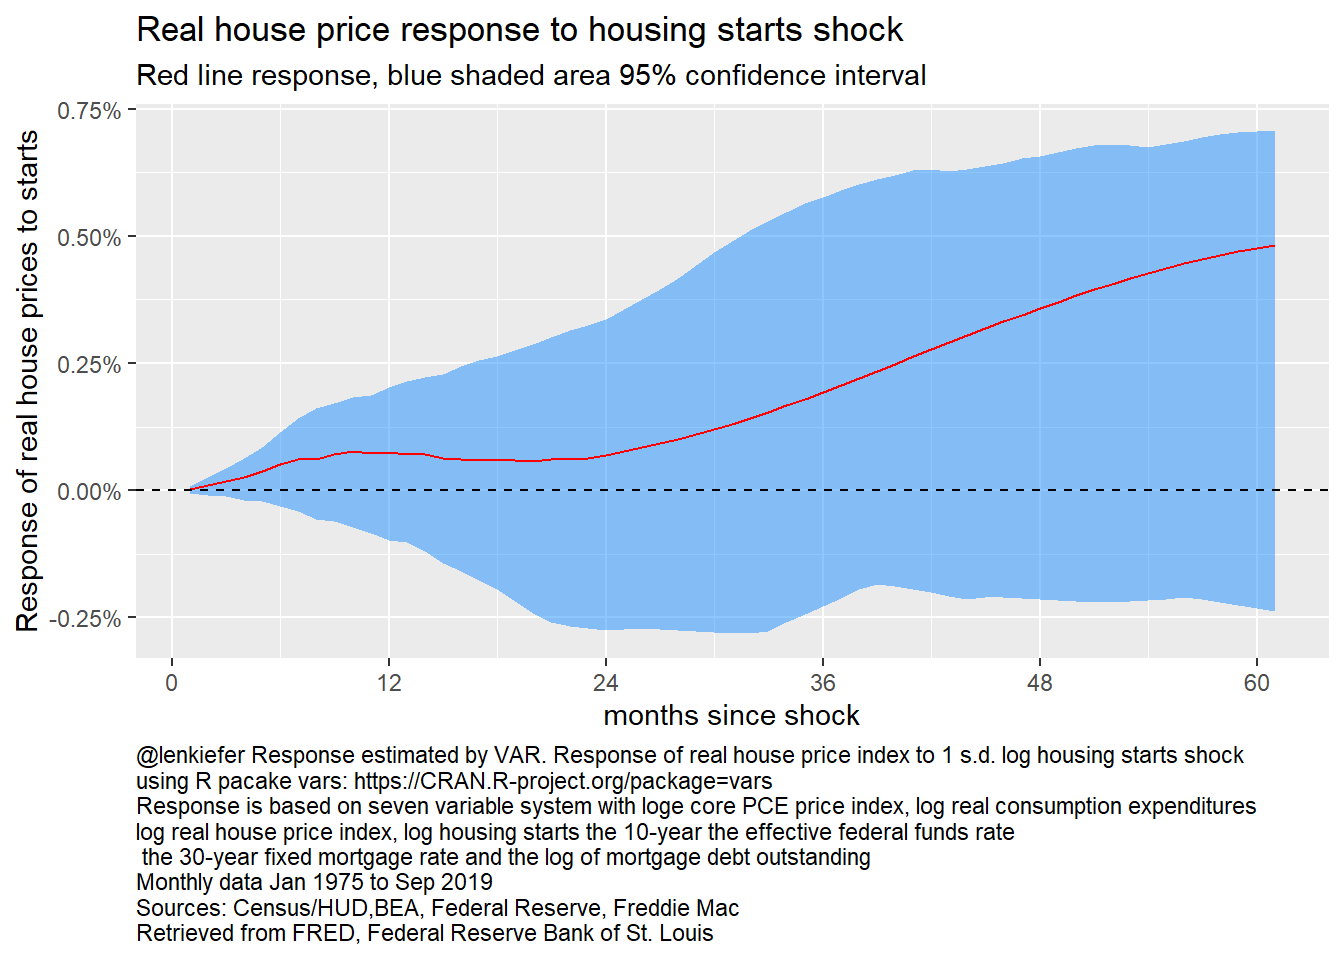 Reponse of log real house prices to log housing starts, 7 variable VAR